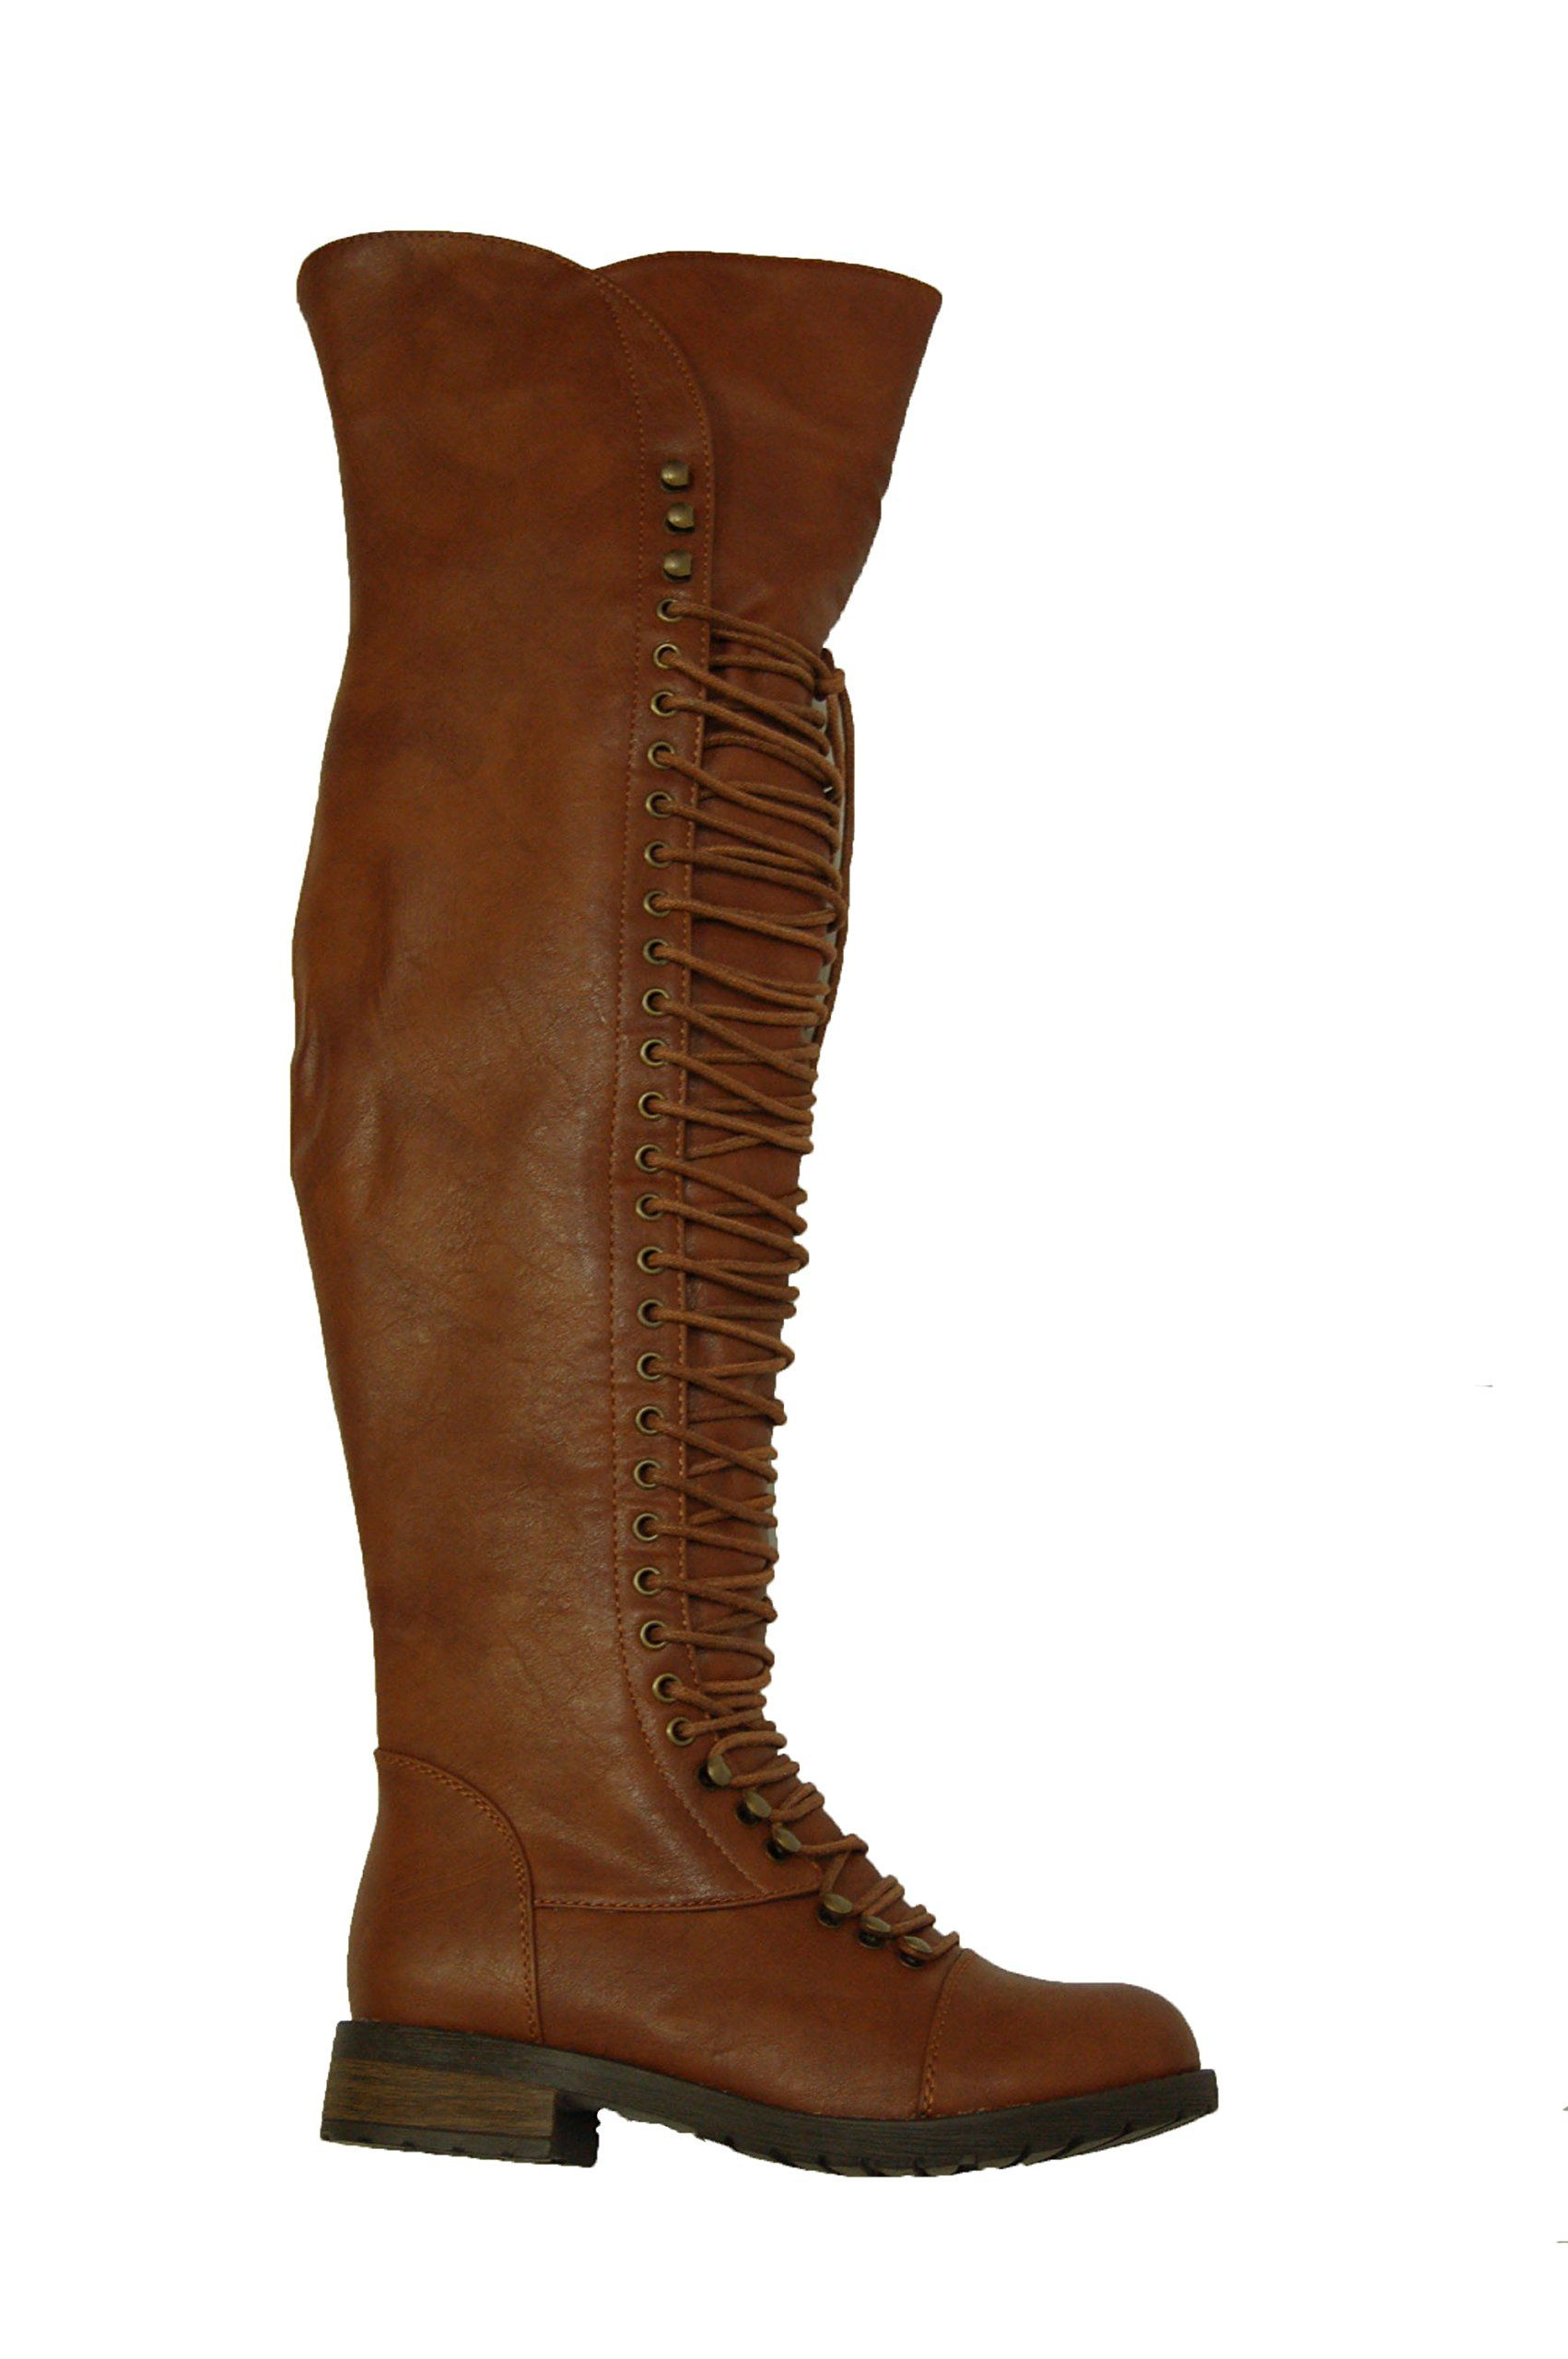 46339ac1ac1c Herstyle Kristrrina Women Military Lace Up Thigh High Combat Bootss Brown 7  * Details can be found by clicking on the image. (This is an affiliate  link) # ...